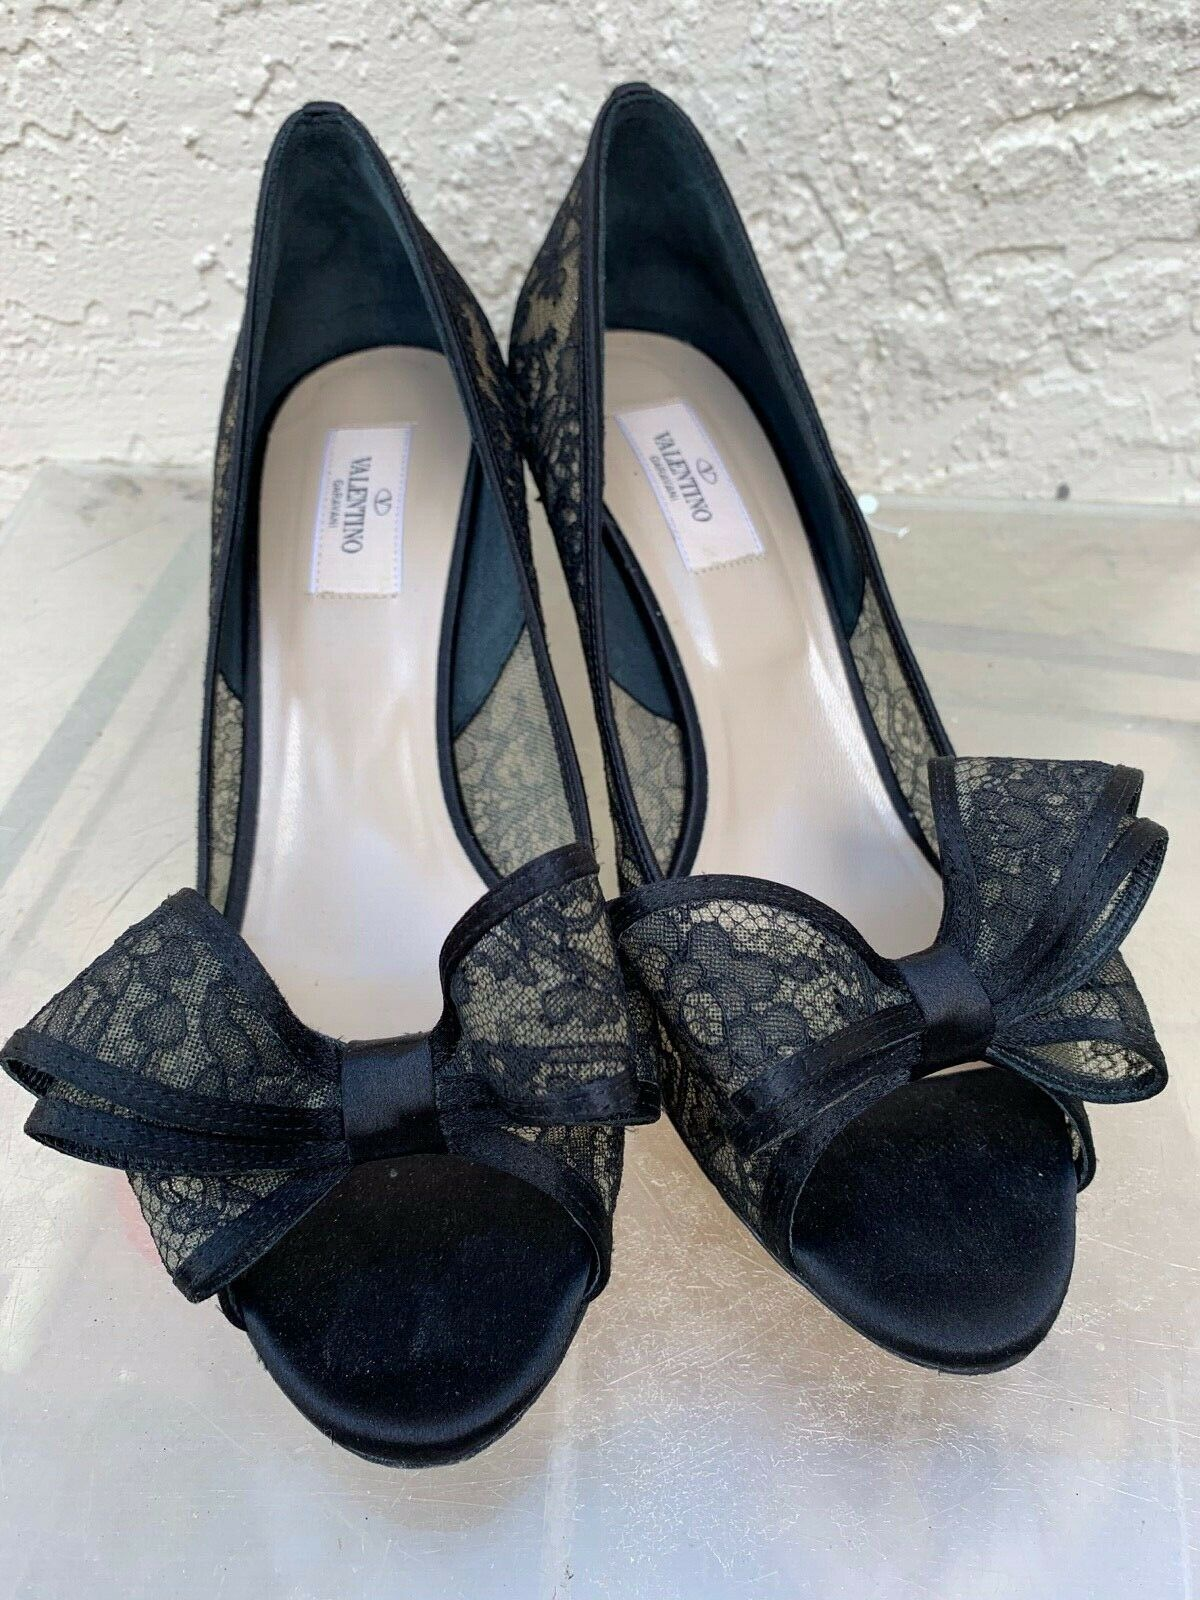 VALENTINO BLACK LACE OPEN TOE PUMPS WITH BOW DETAIL SZ 40